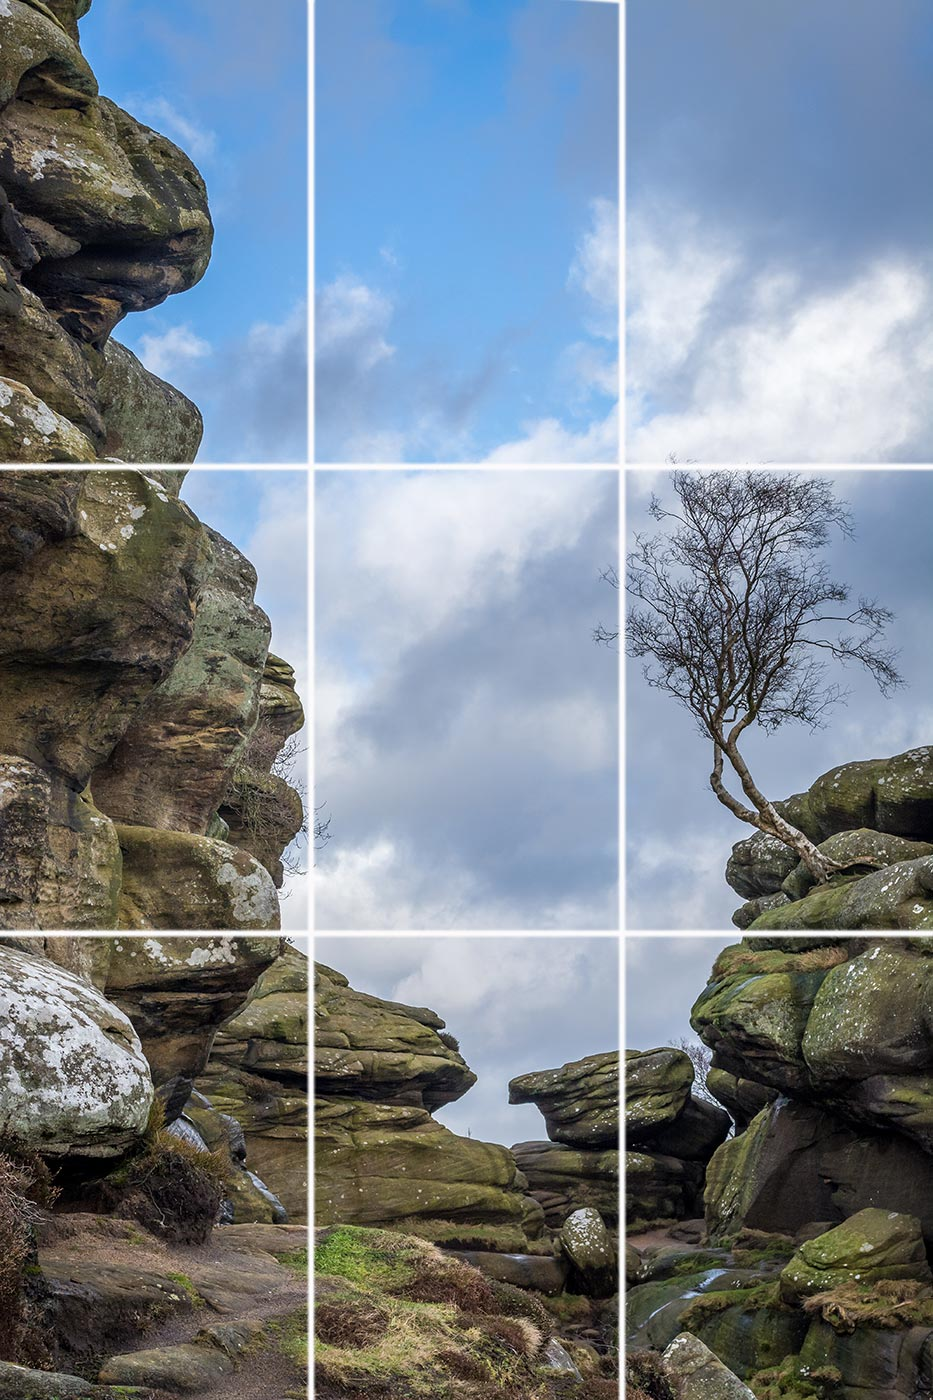 Brimham Rocks lone tree on rock outcrop in Yorkshire rule of thirds